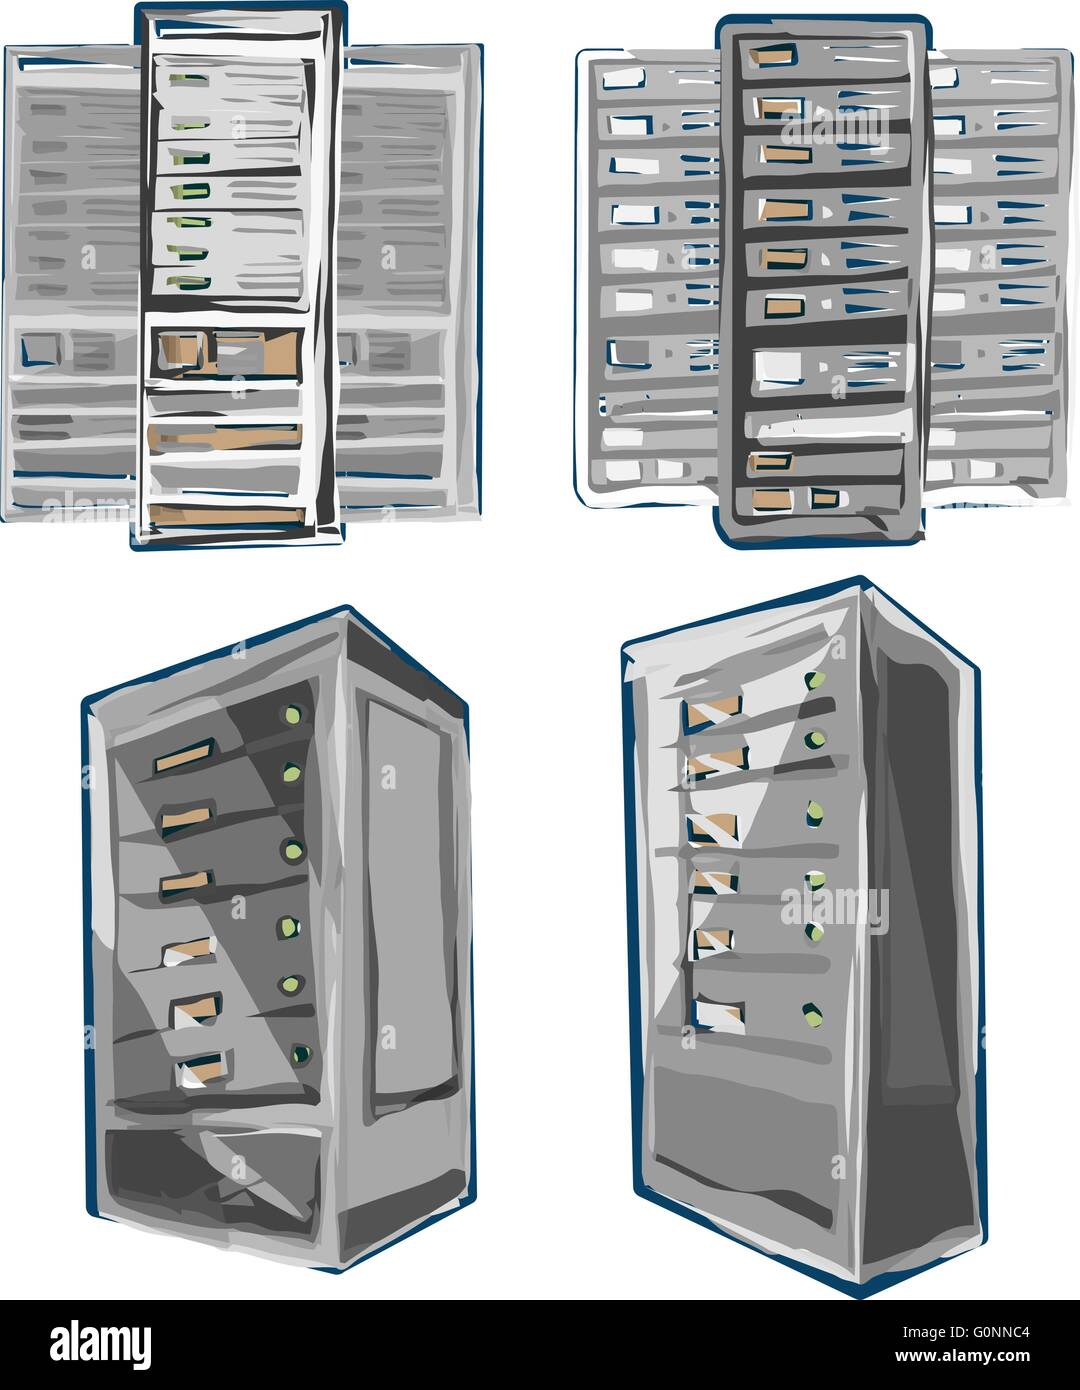 Sketch style Vector of Server Rack. Color scheme. - Stock Image